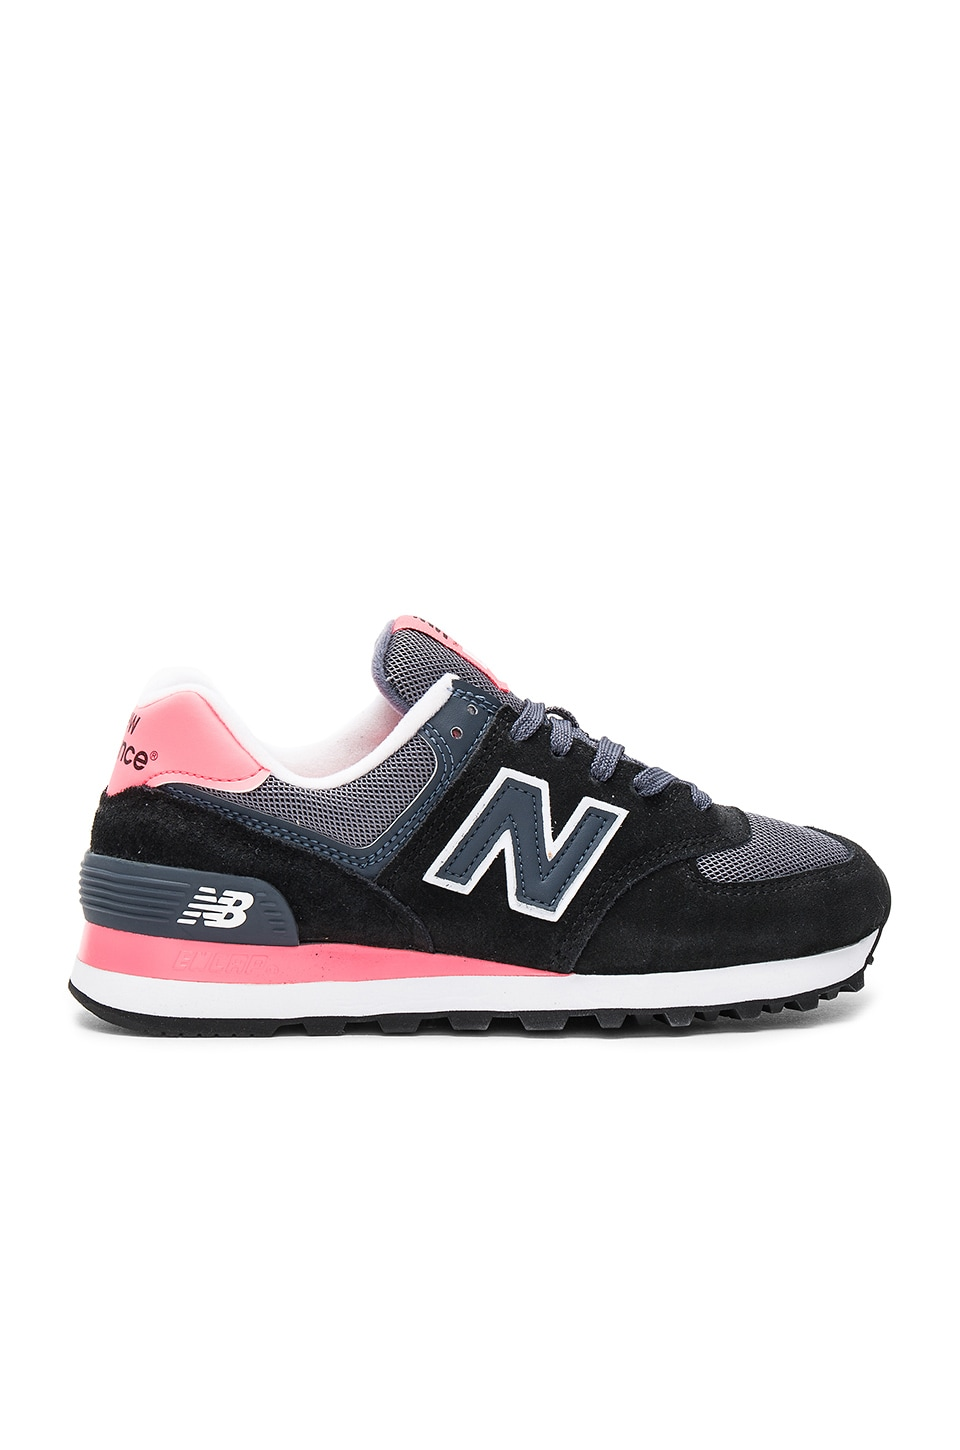 New Balance Classic Running Sneaker in Black Guava & Grey